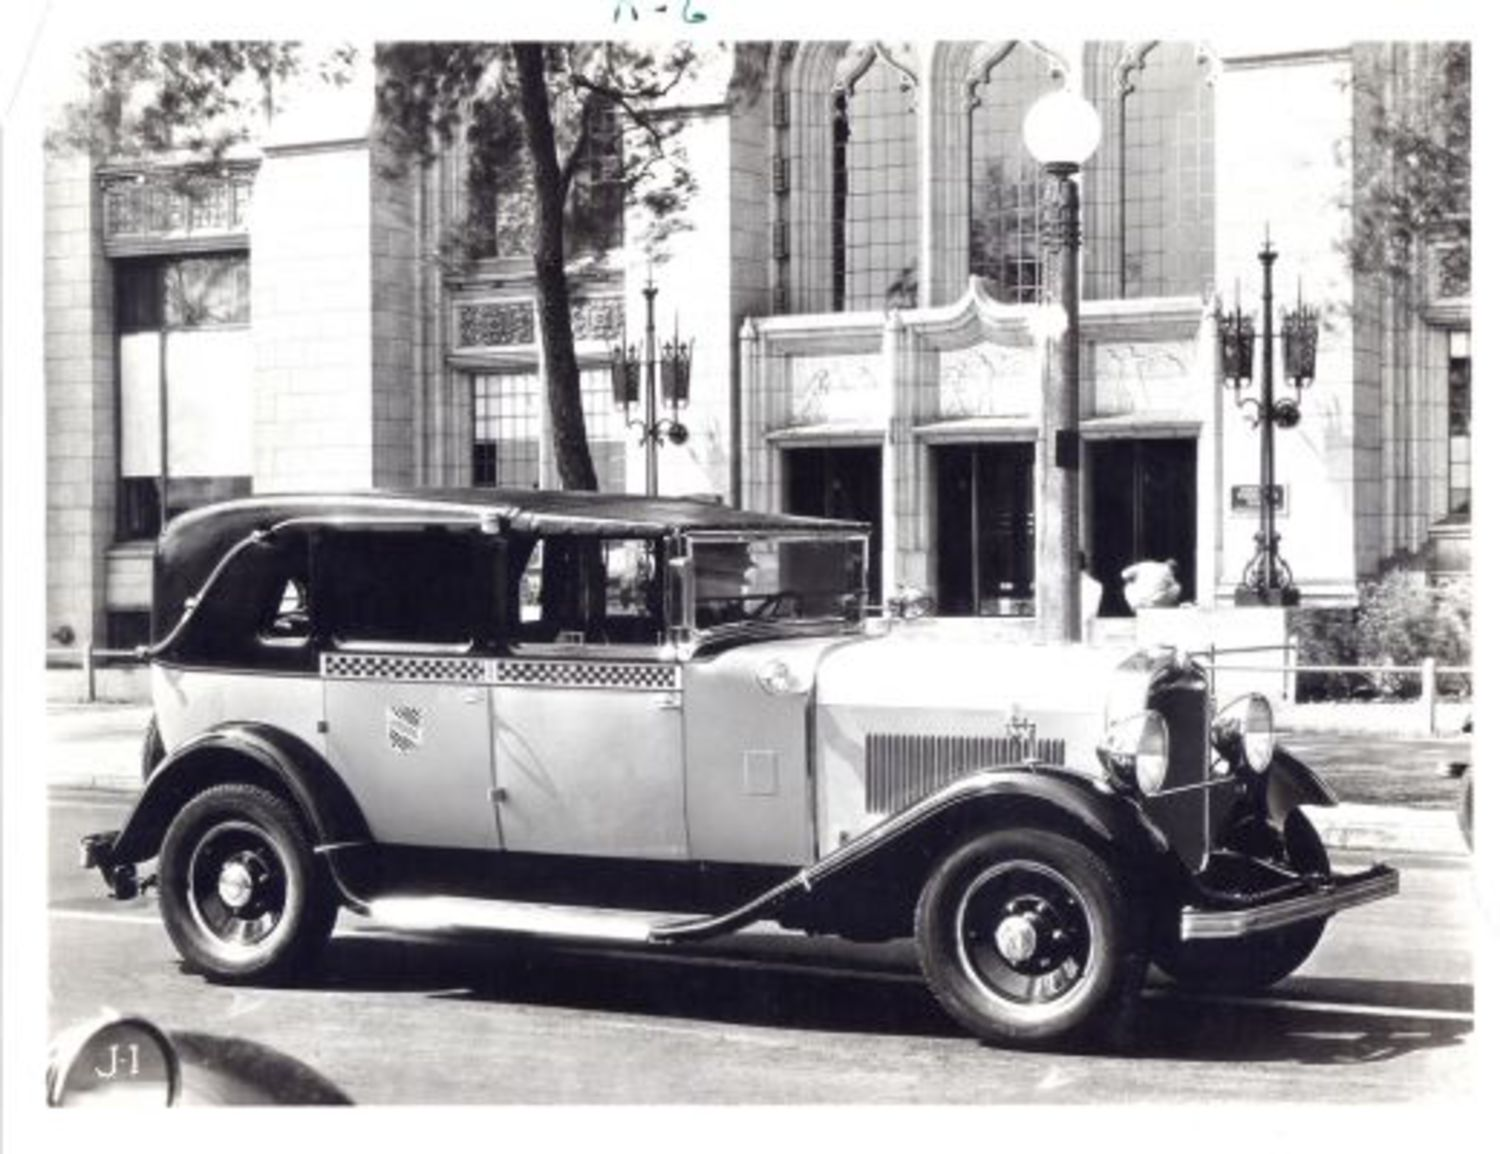 Checker Cabs of the 1920s: Shiny new models hit the streets